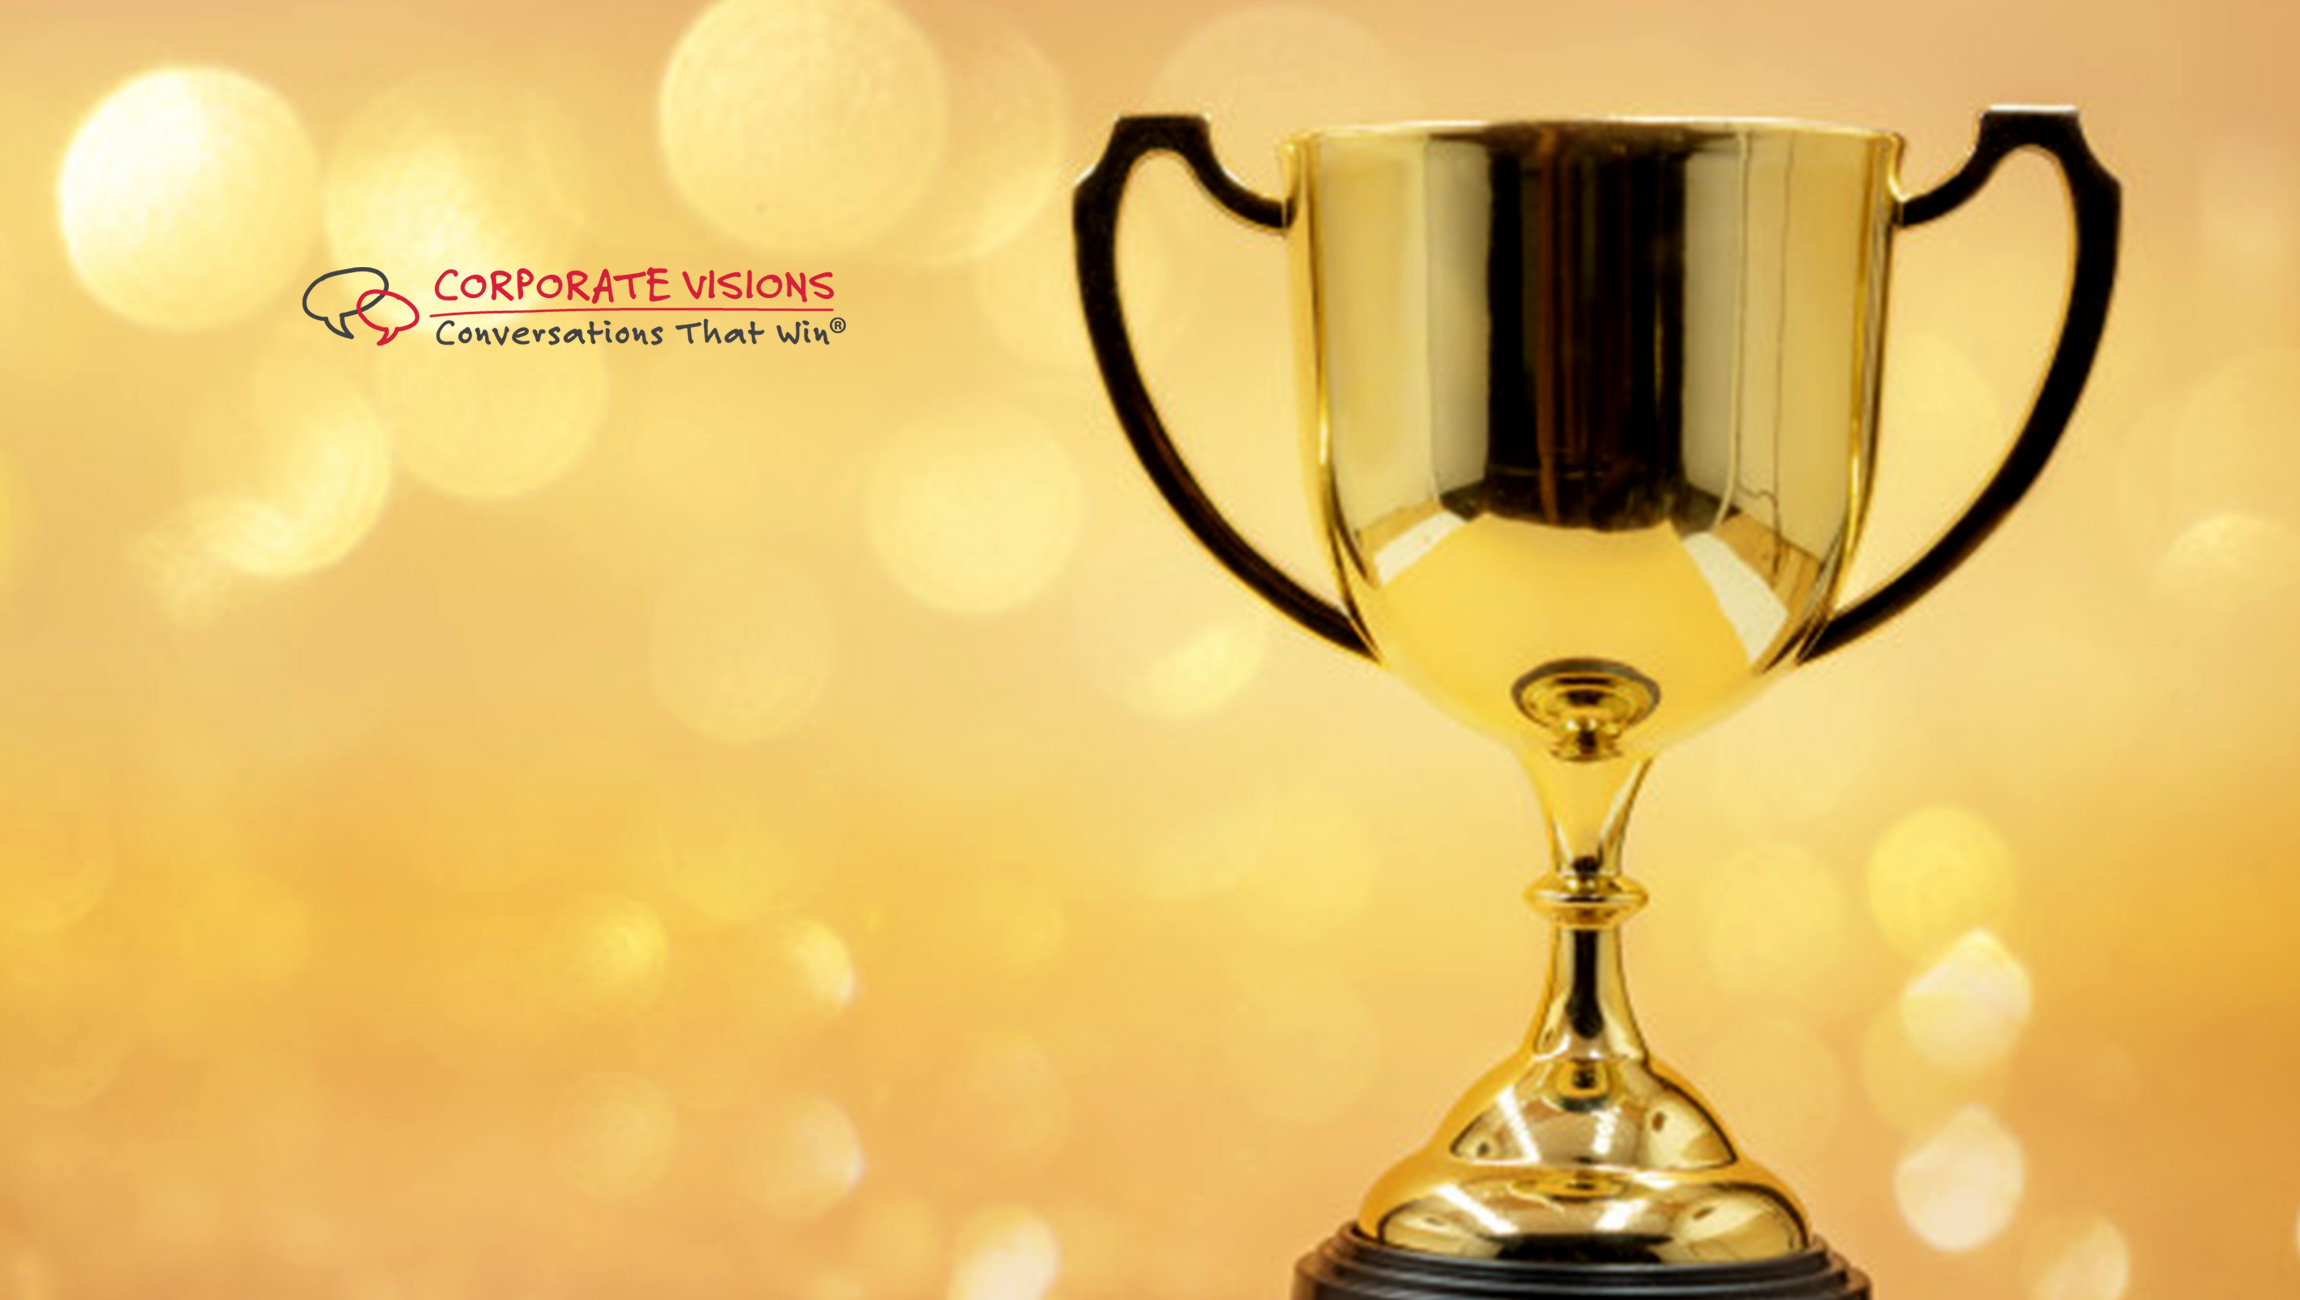 SAP's Pre-Sales Training Program Developed with Corporate Visions Wins Gold Brandon Hall Excellence in Learning Award